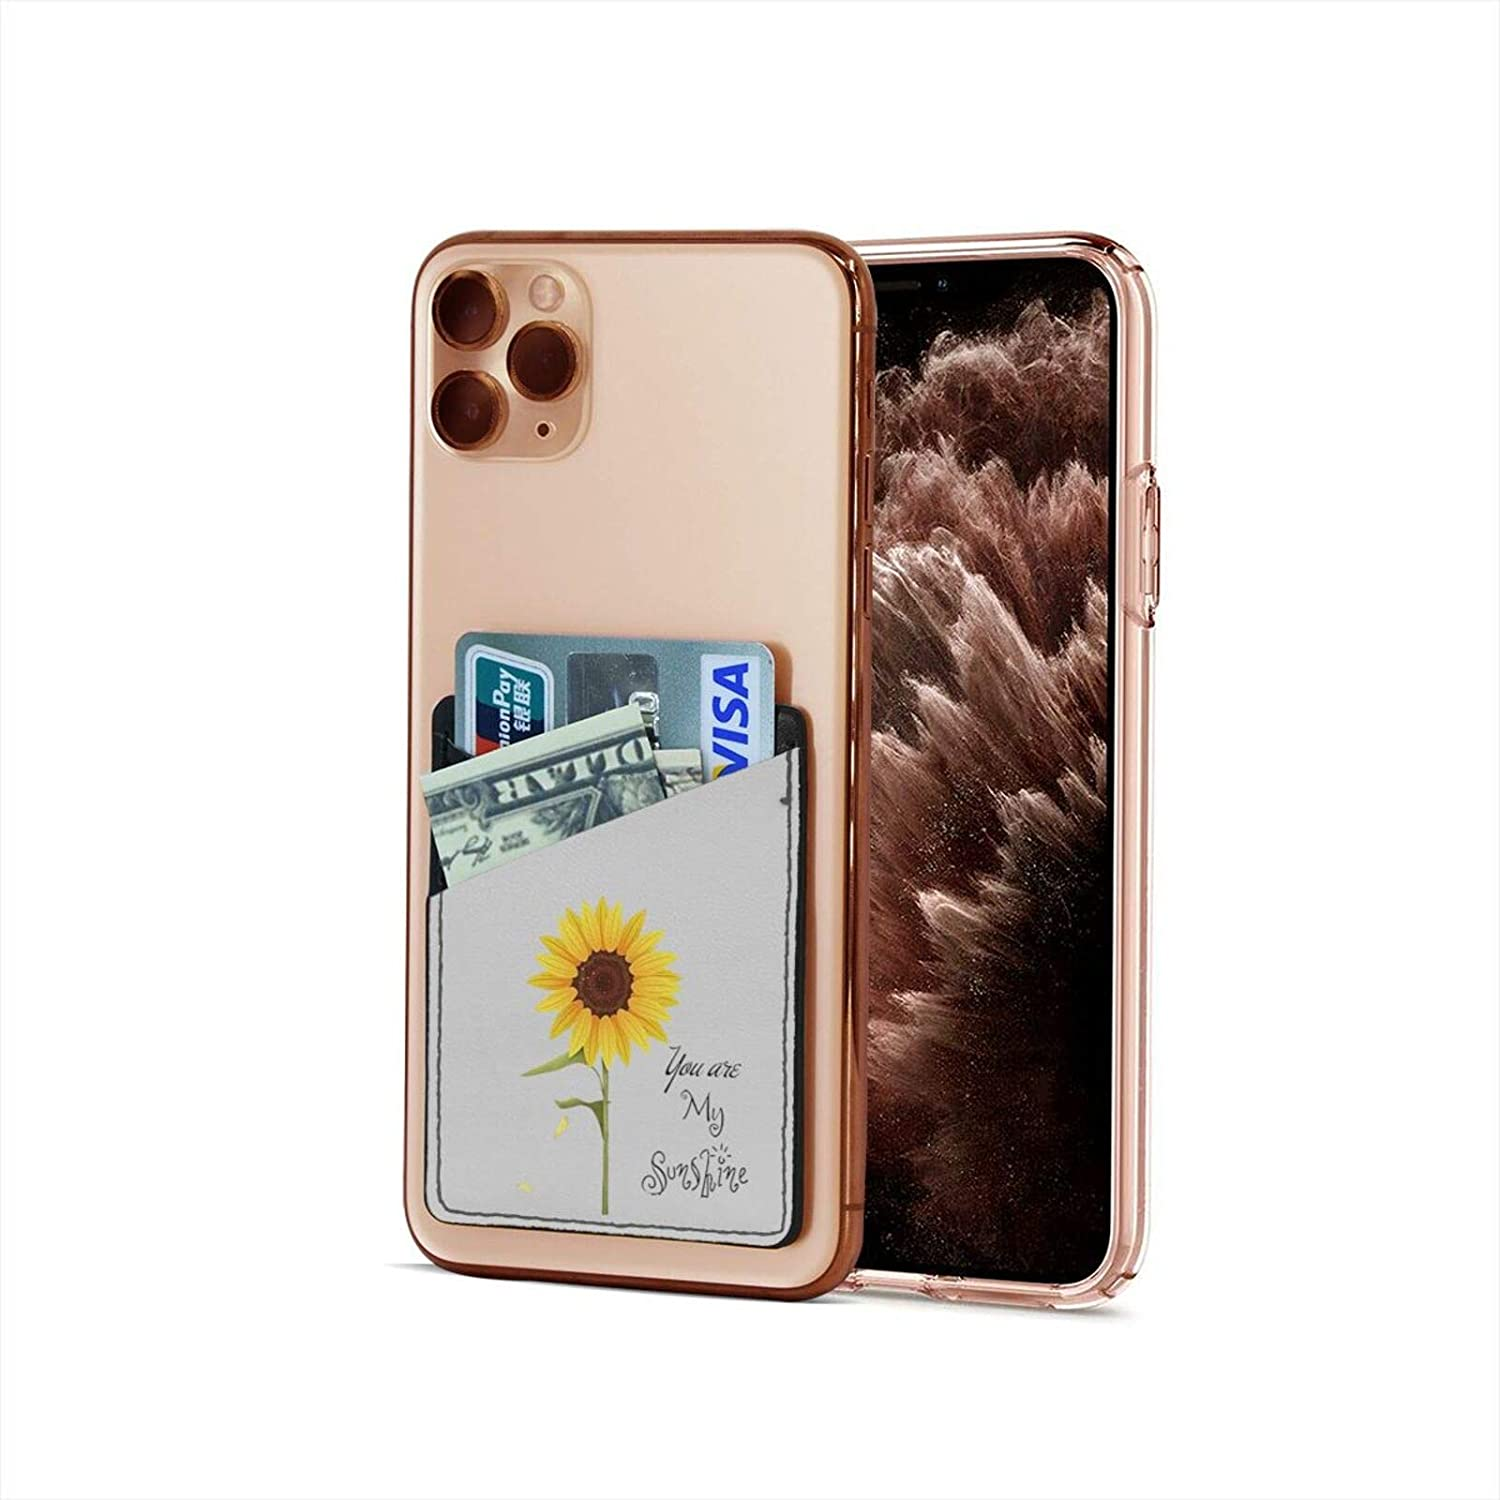 Cell Phone Card Holder, Phone Pocket Stick On Cell Phone Wallet Sleeve for Credit Card, Business Card Id and Keys Sunflower